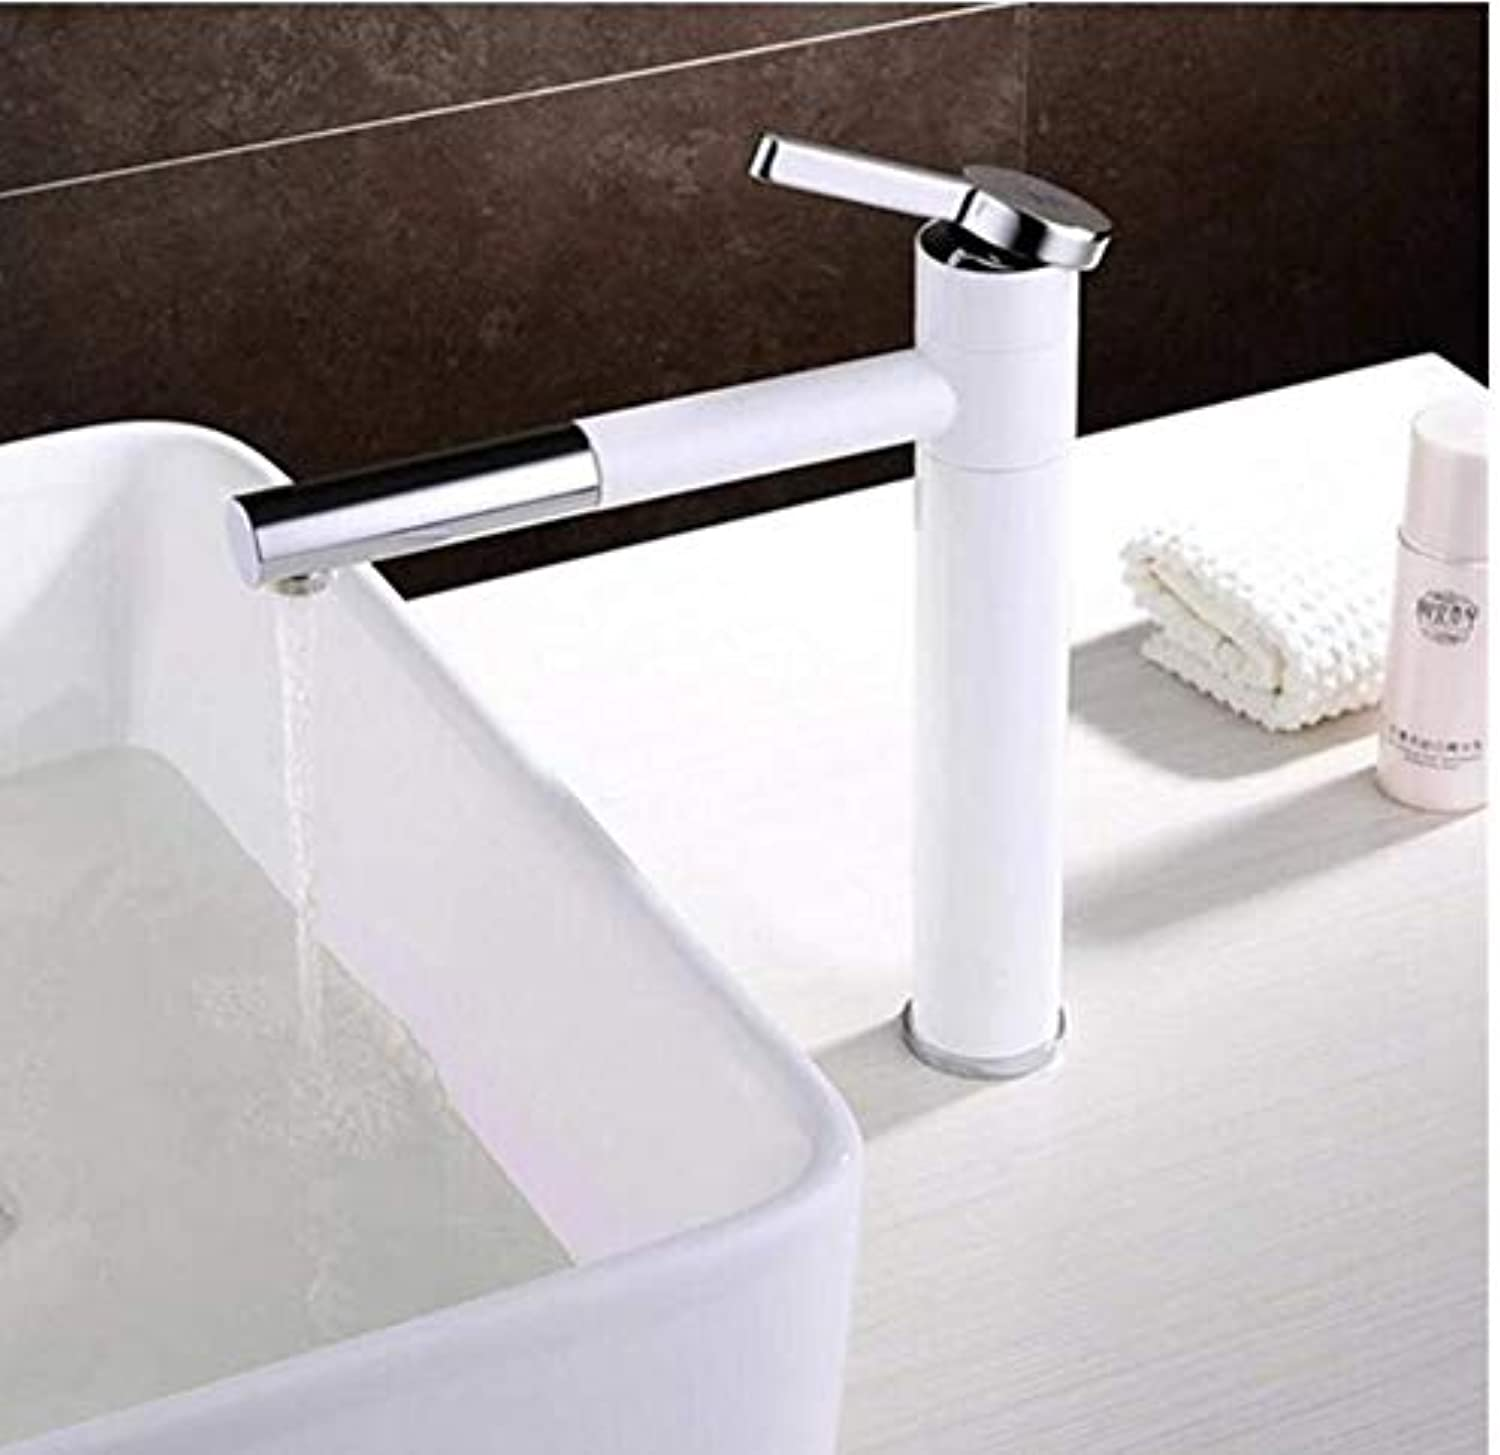 Modern Double Basin Sink Hot and Cold Water Faucetfaucet Hot Cold Basin Faucet White for Art Basin